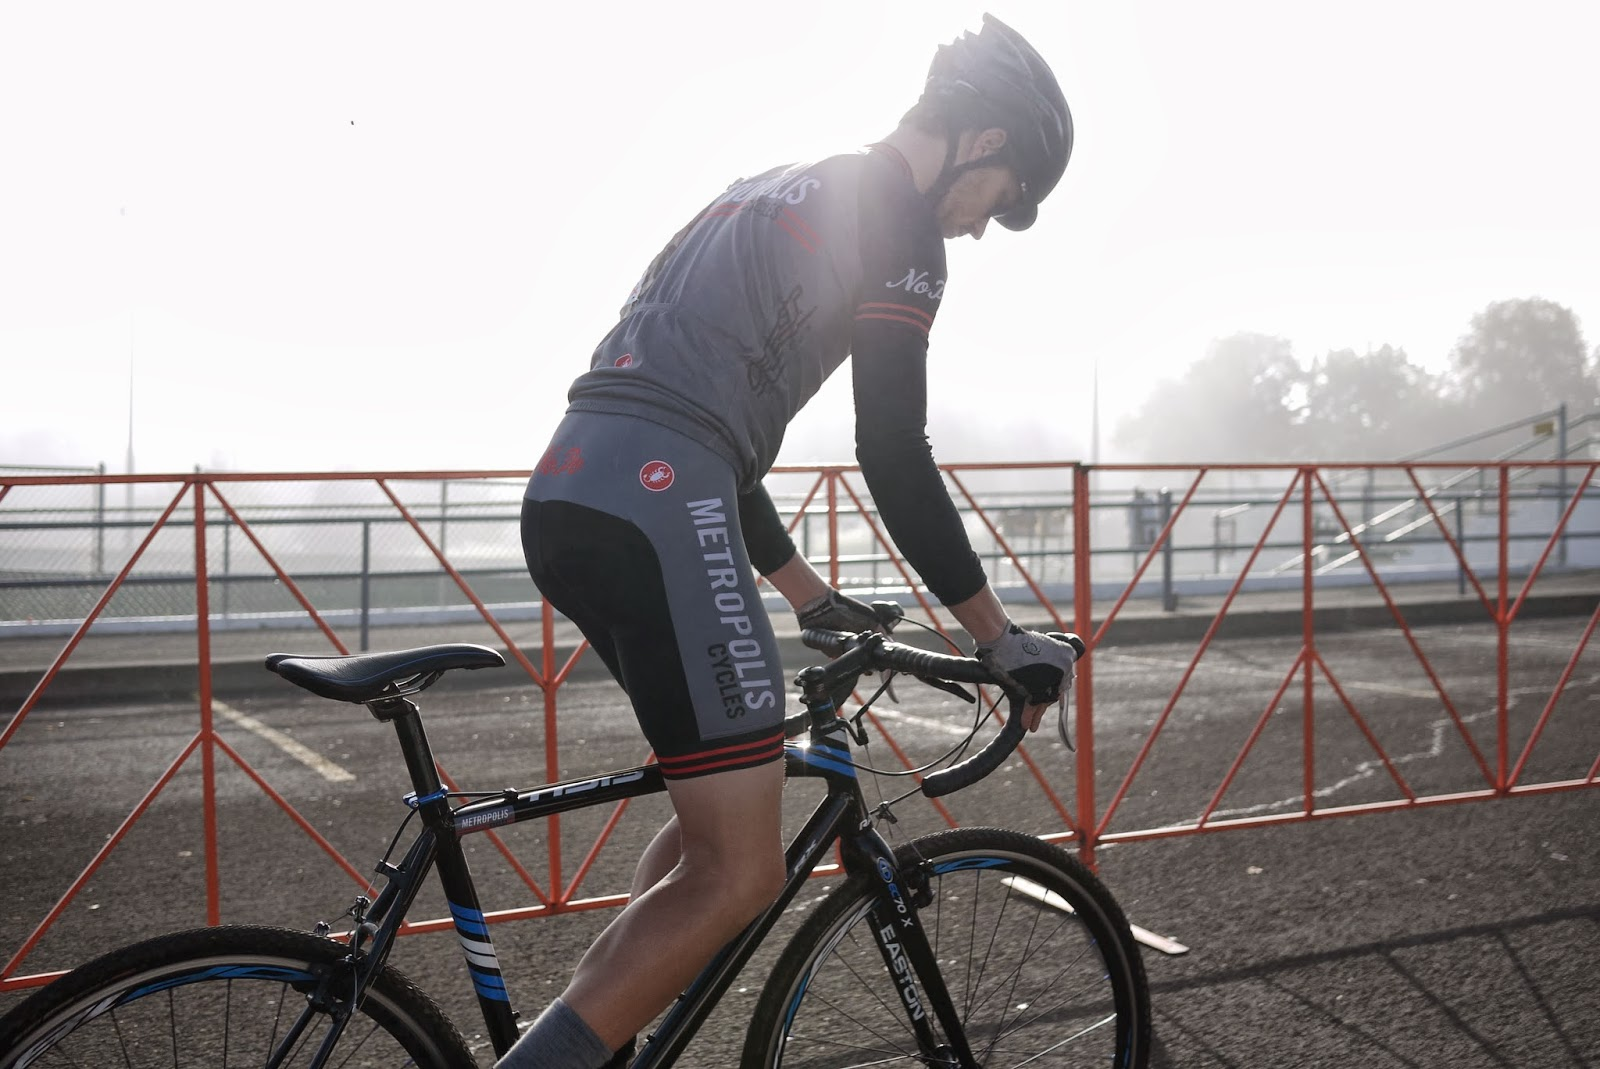 The First Race Of 2017 River City Bicycles Cyclocross Crusade Dawned Cool And Foggy Over Hills Southwest Portland Grounds